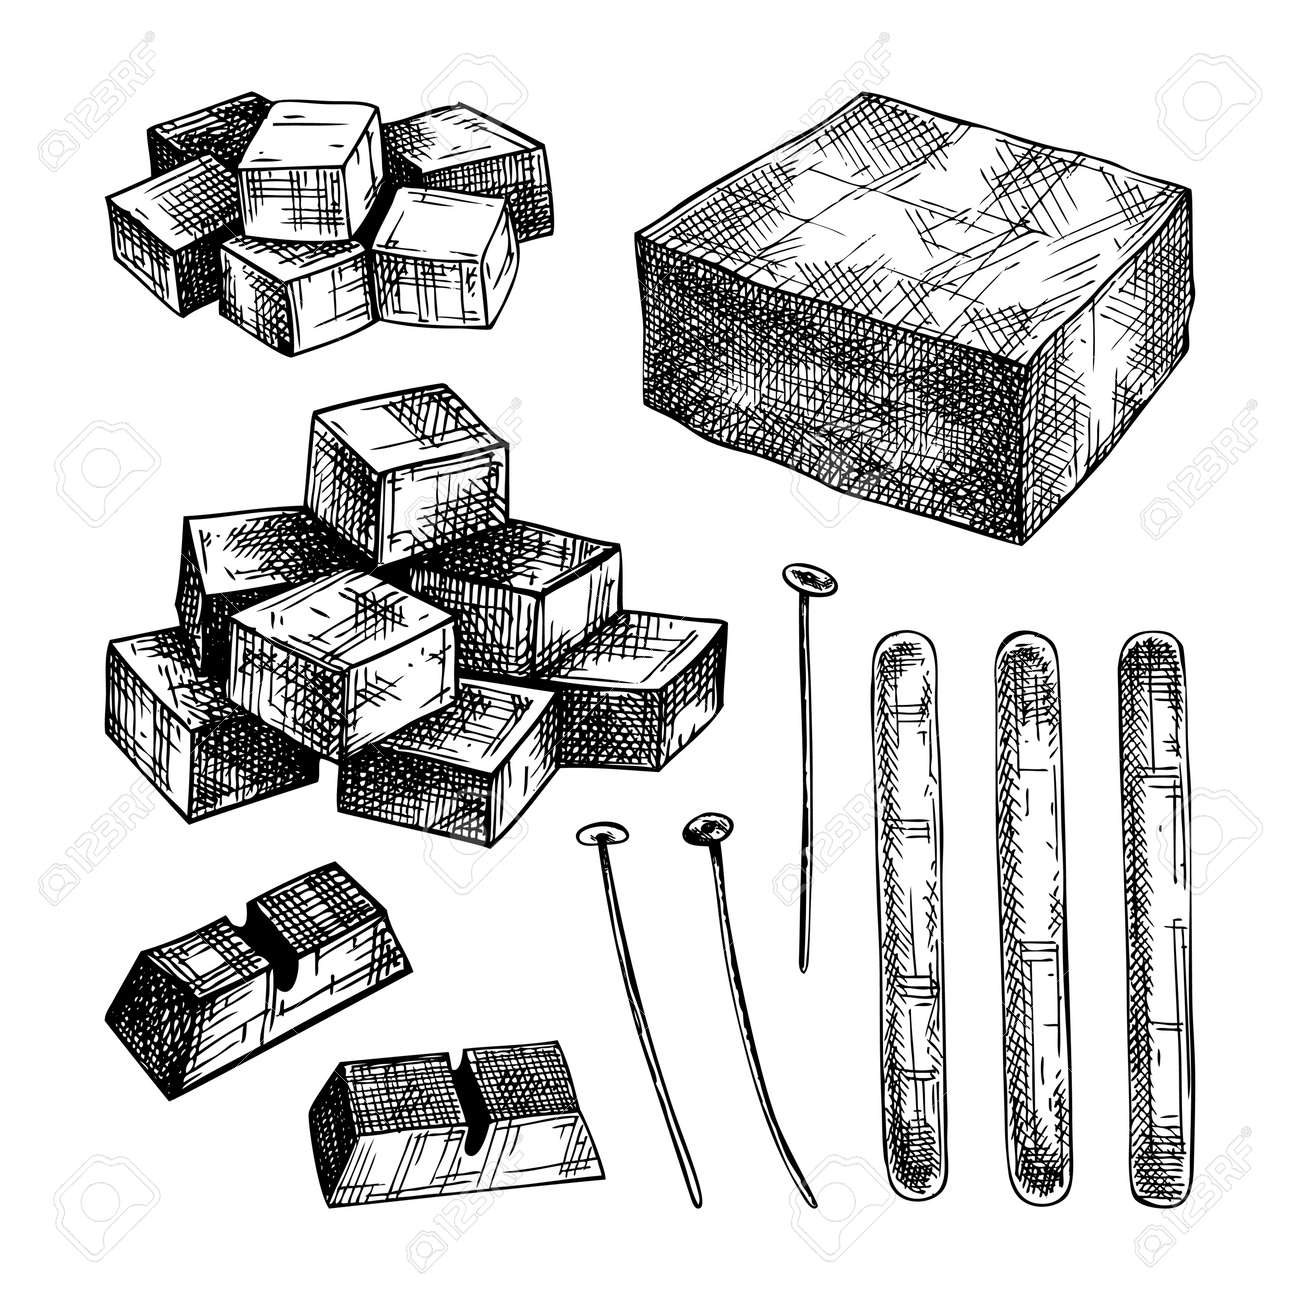 Hand-sketched aromatic candles ingredients collection. Vector illustrations of wax, paraffin, fragrance, color and skewers. For aromatherapy, hygge home or holiday decoration, meditation. - 170259571